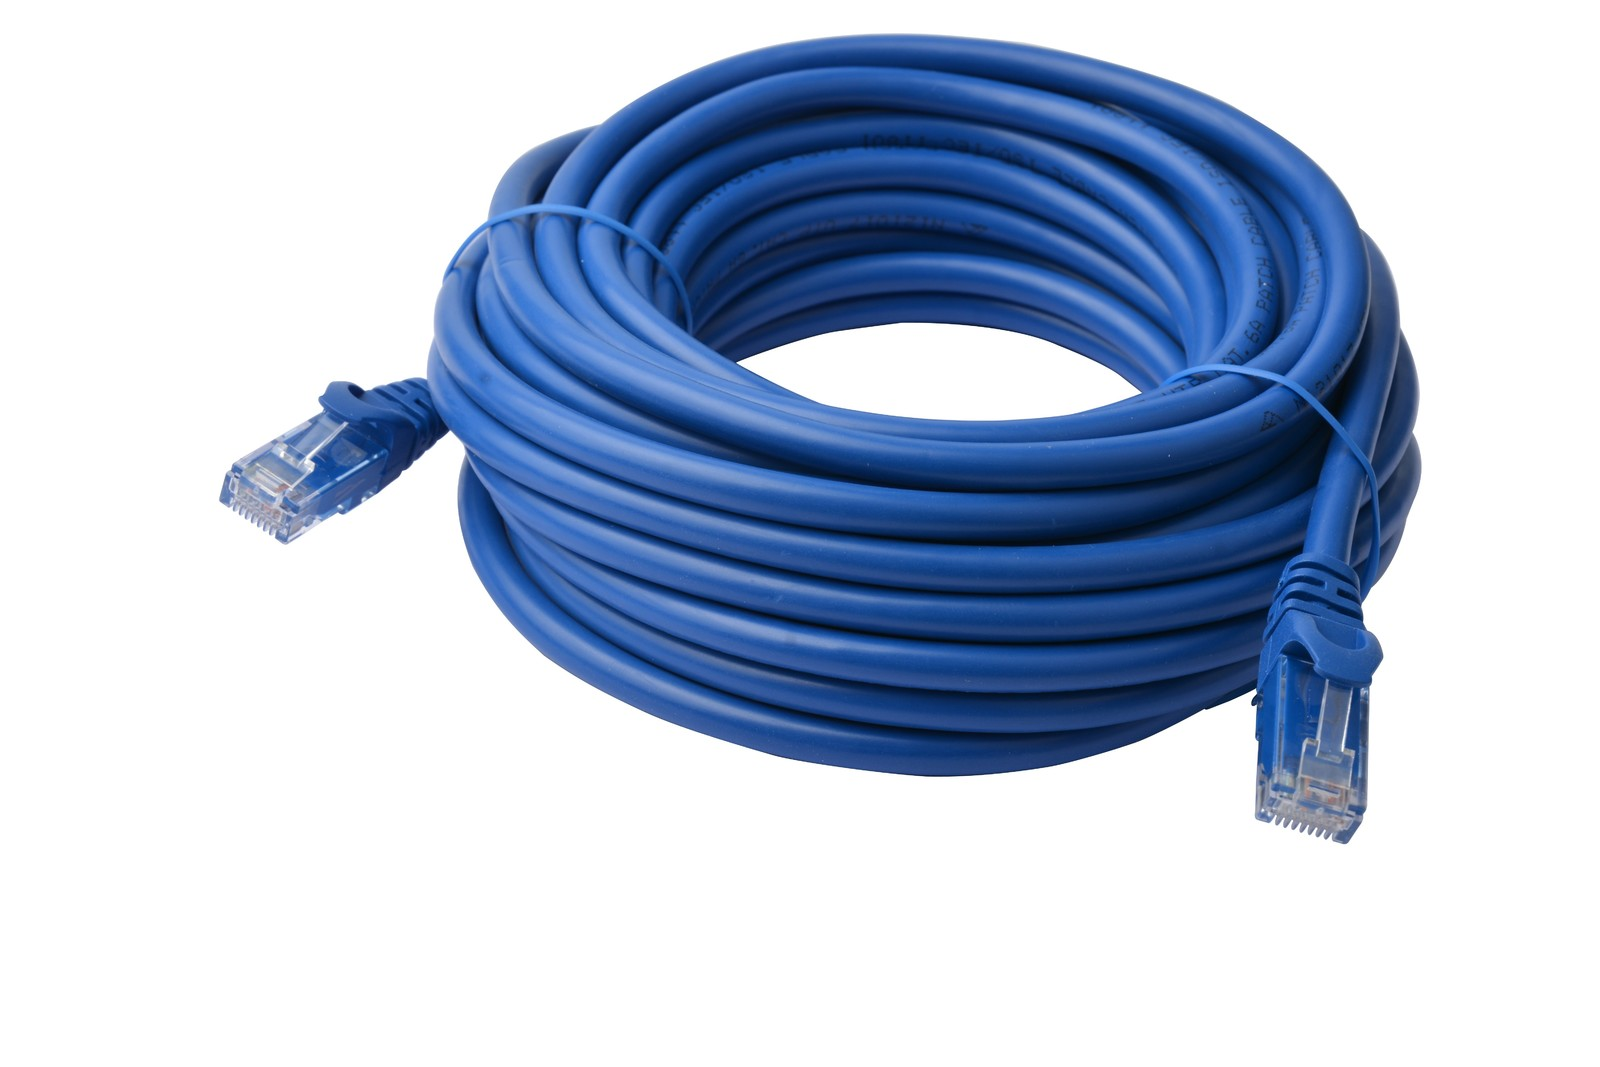 Cat 6a Utp Ethernet Cable Snagless Blue 40m At